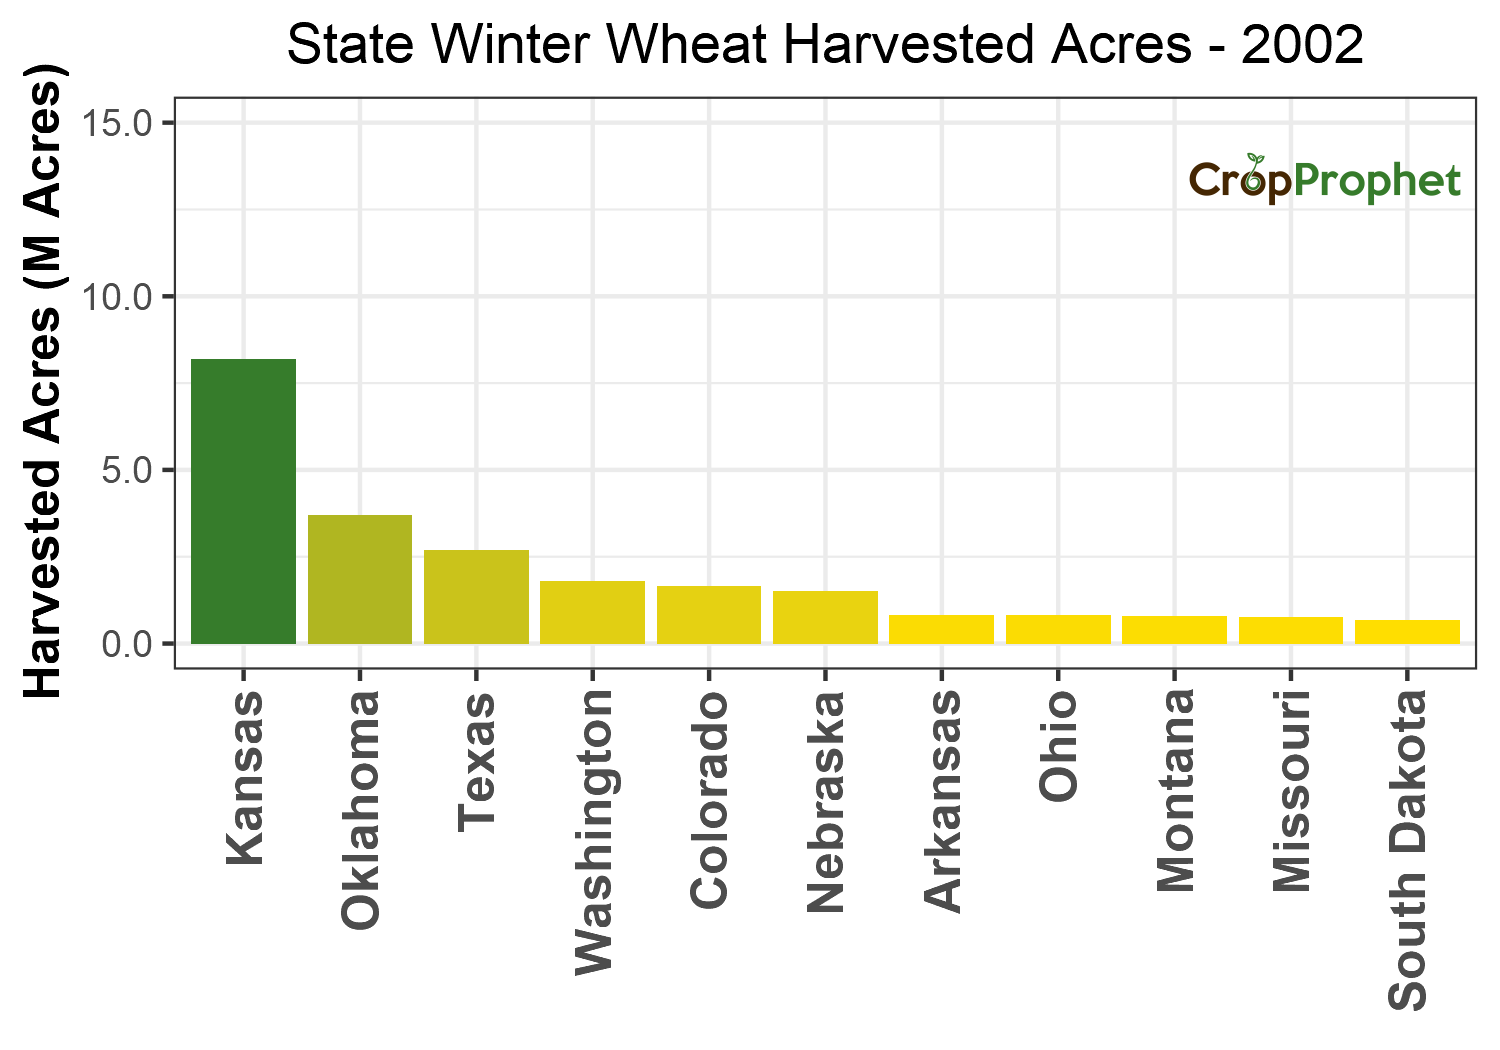 Winter wheat Harvested Acres by State - 2002 Rankings